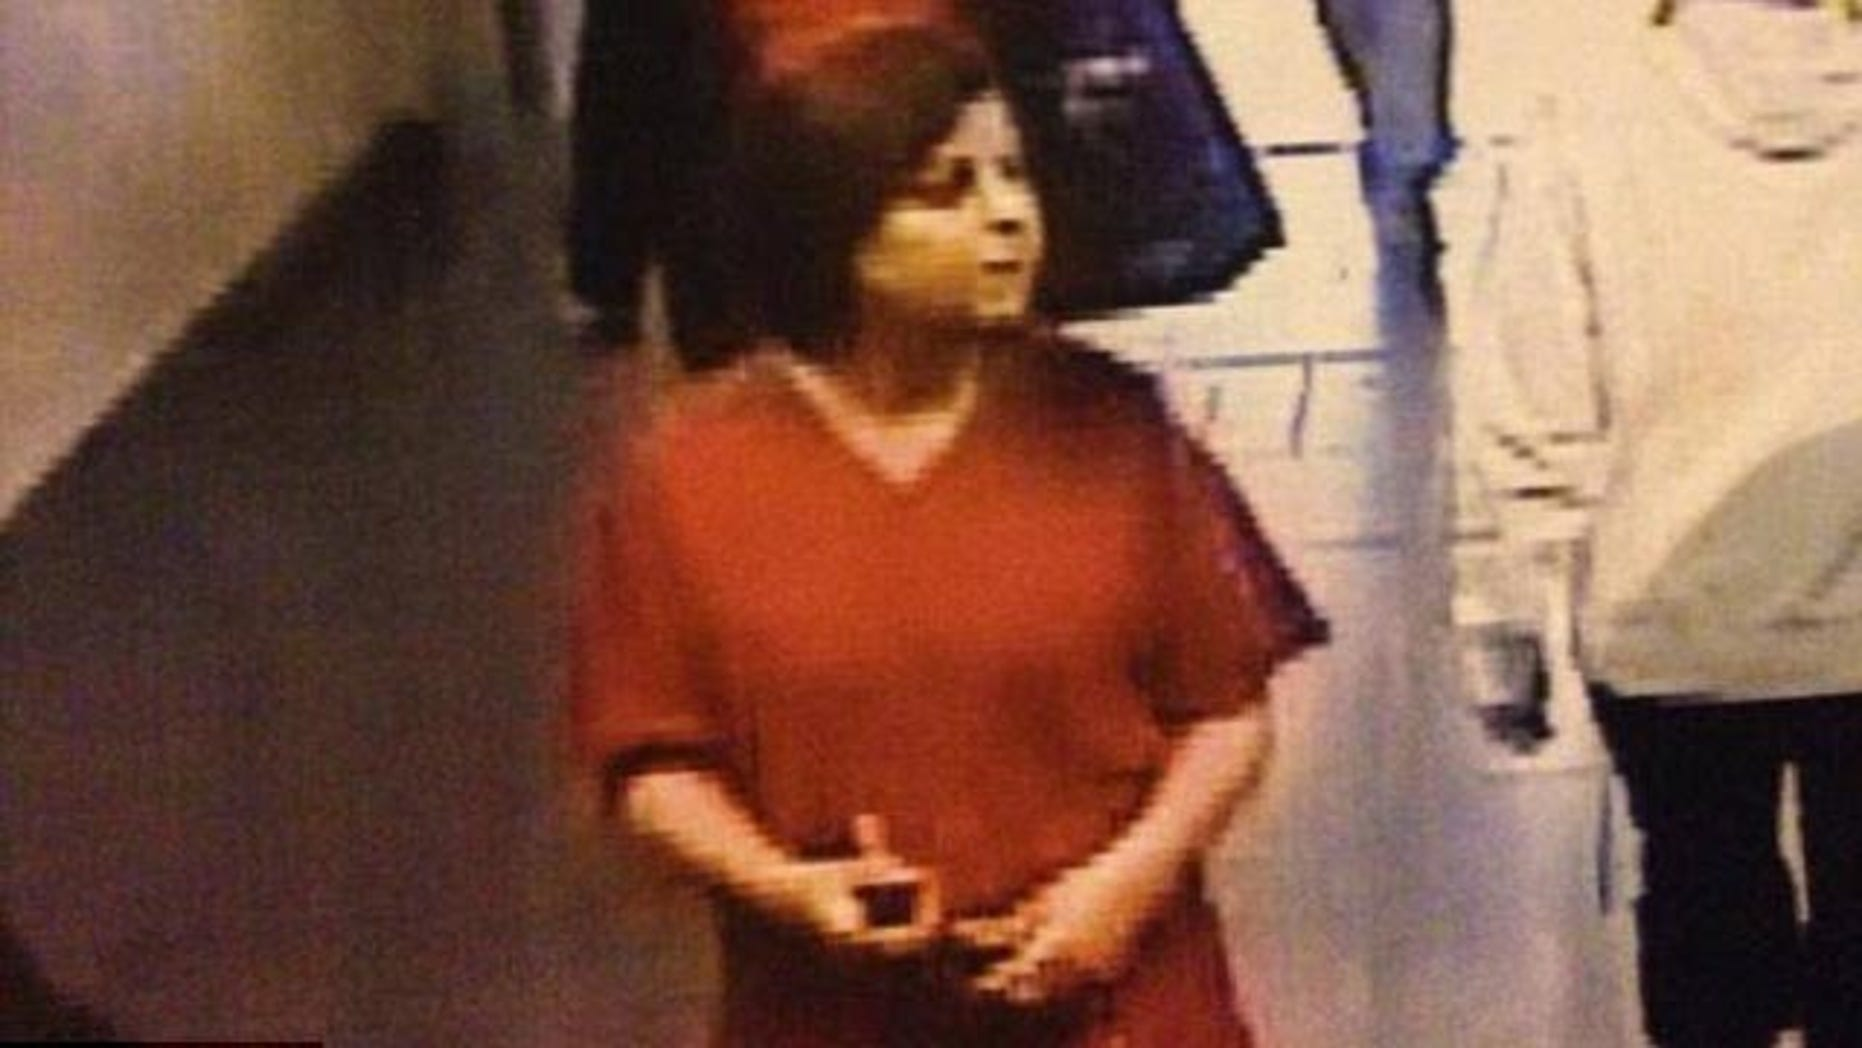 May 26, 2014: This photo taken from surveillance footage appears to show a women whom police believe abducted an hours-old baby from a hospital in Trois-Rivieres, Quebec, Canada (Quebec Police)